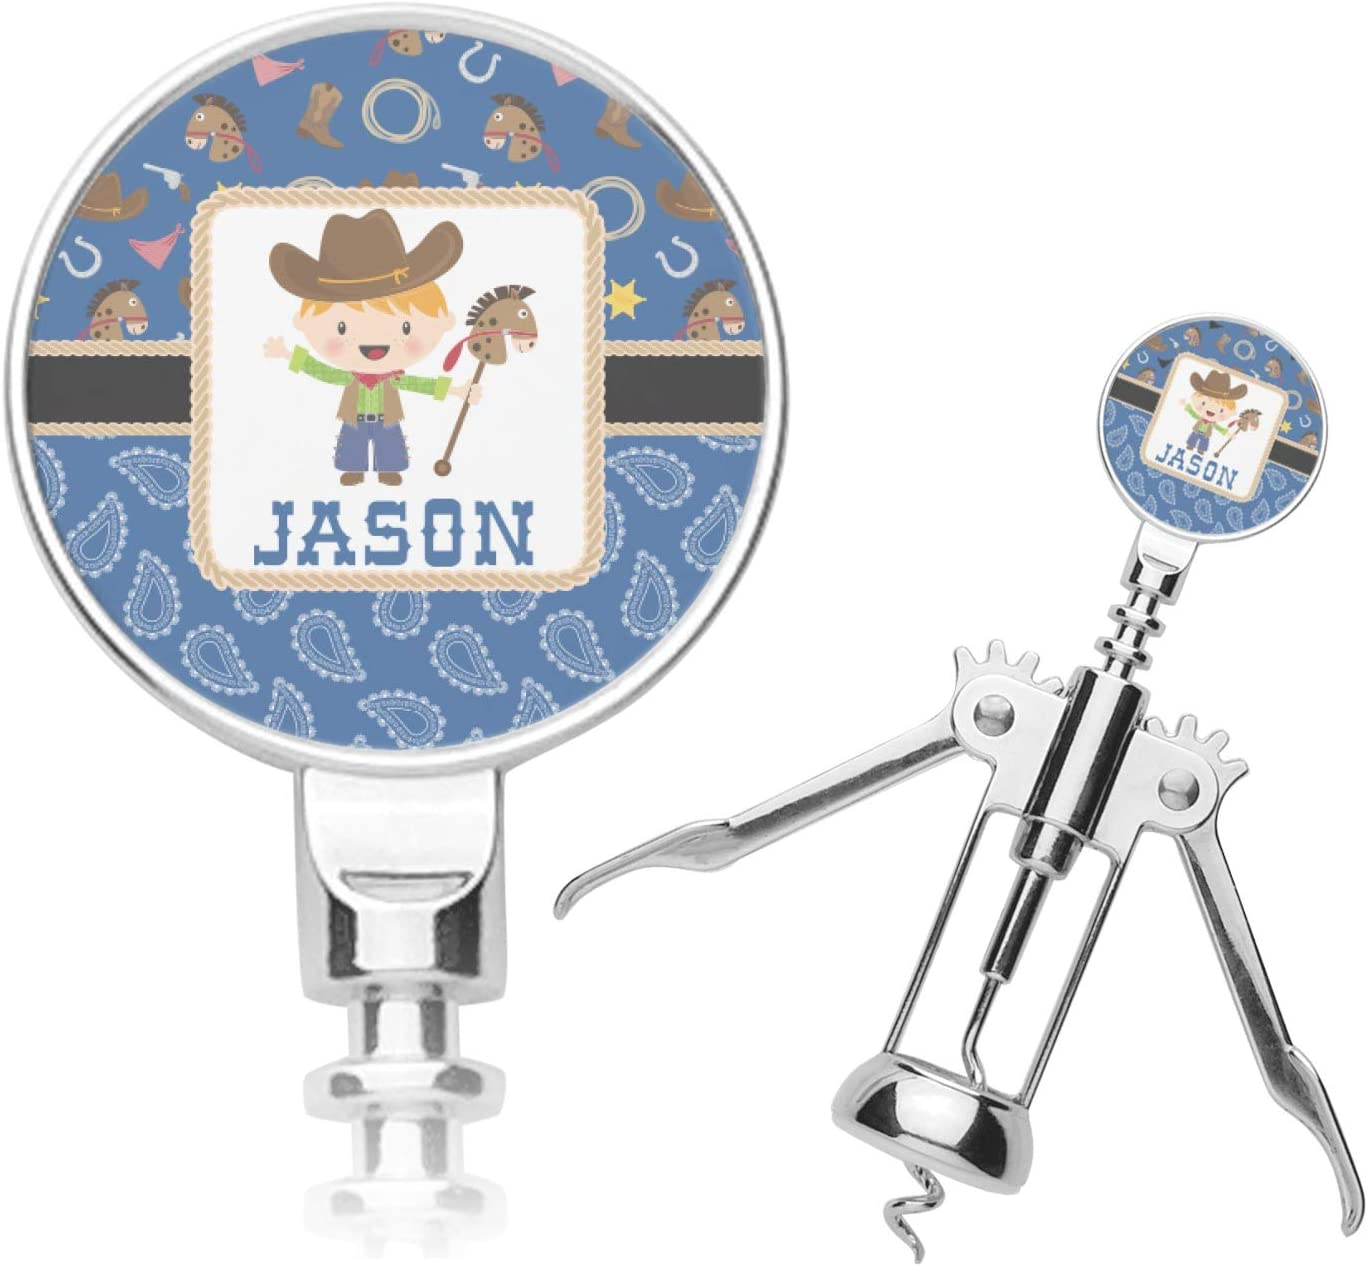 Blue Max 56% OFF OFFer Western Personalized Corkscrew